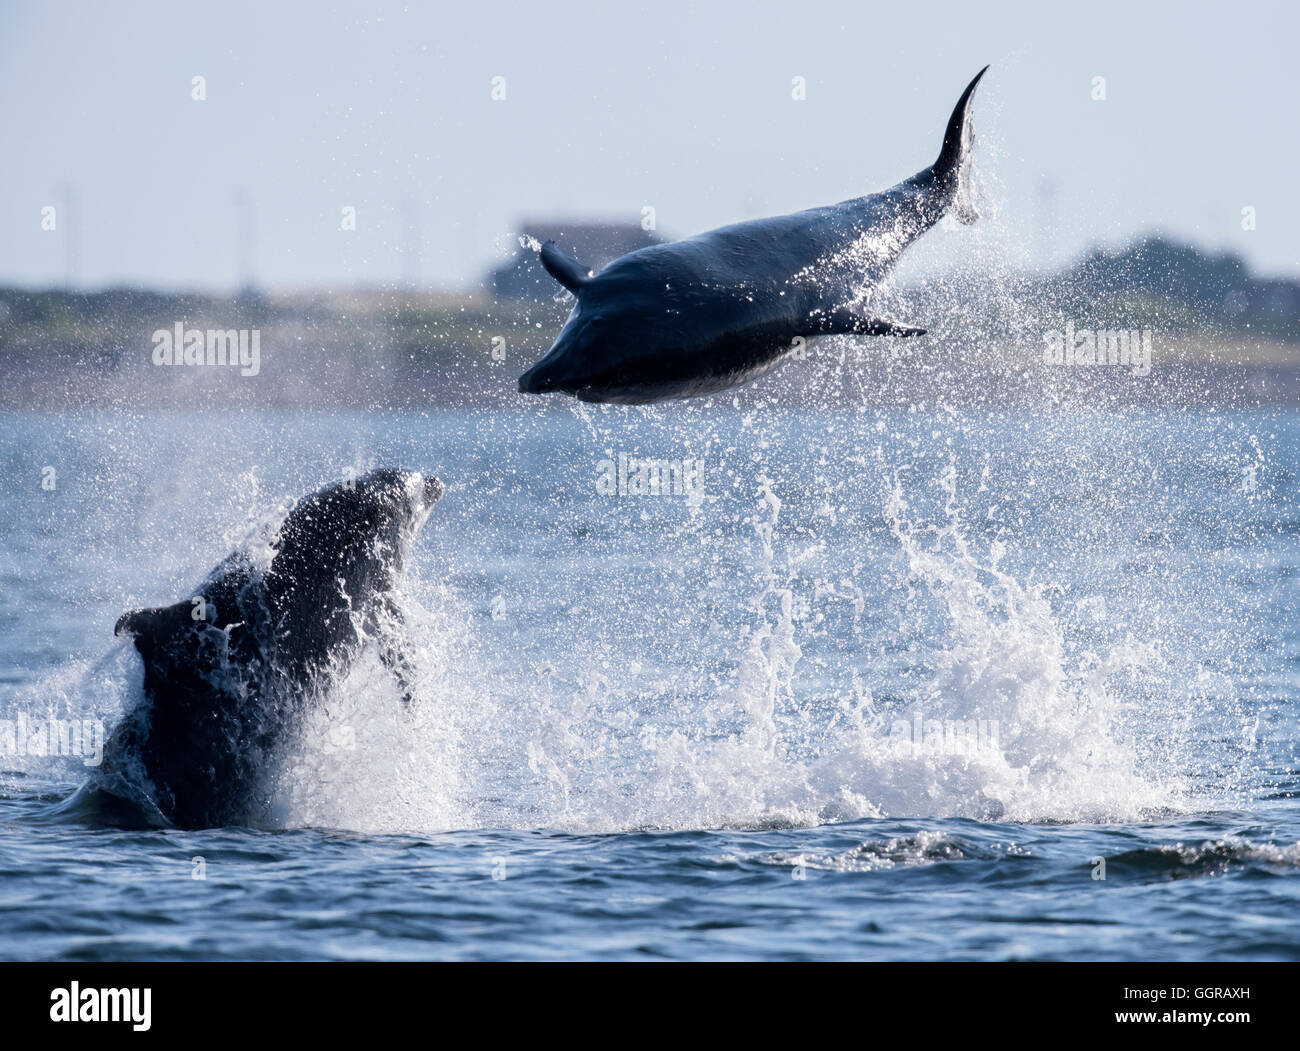 Two Bottlenose Dolphins (Tursiops truncatus) socializing at Chanonry Point, Moray Firth, Scotland - Stock Image